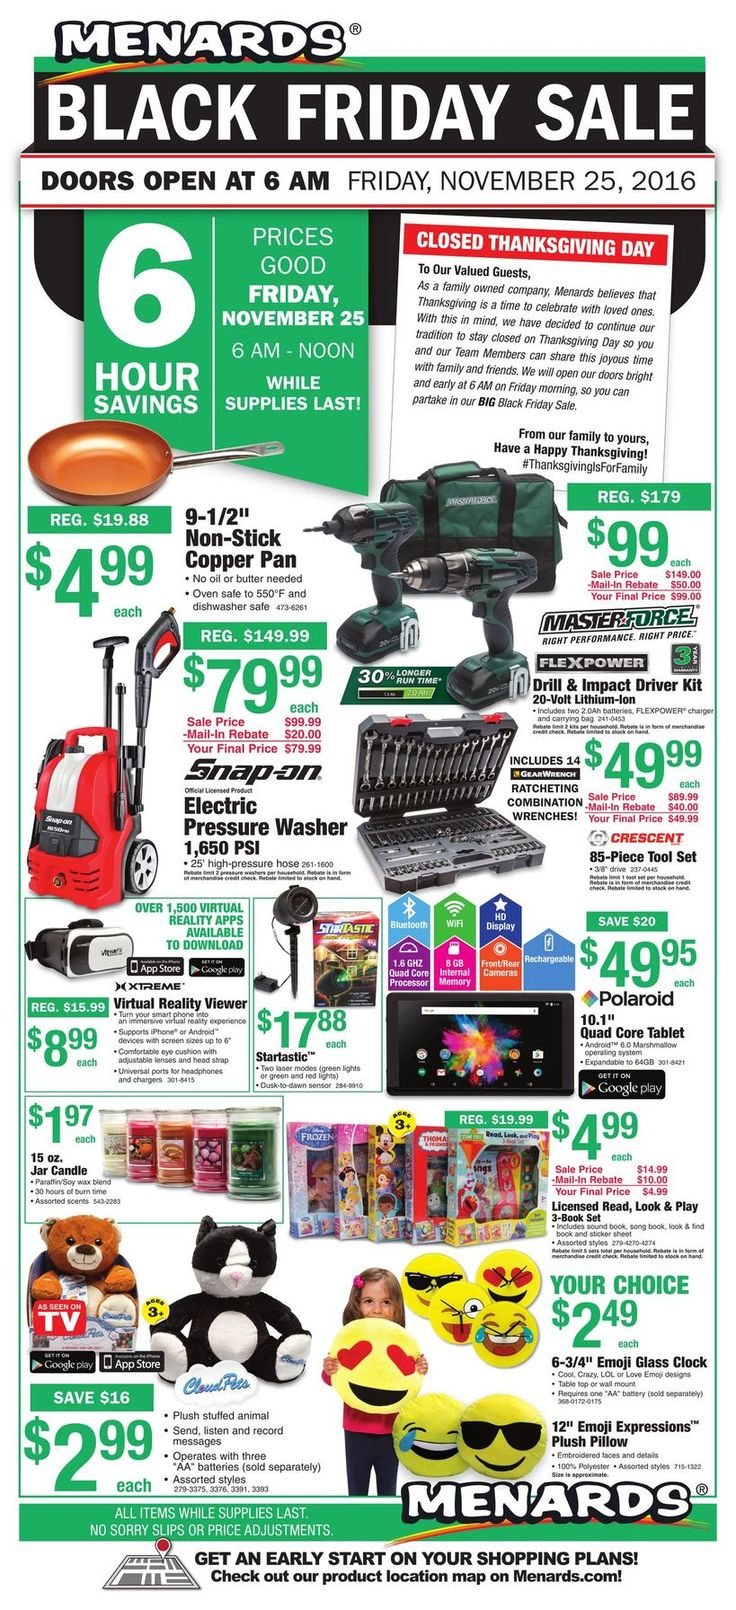 Menards Black Friday Ad - http://www.hblackfridaydeals.com/menards-black-friday-deals-sales-ads/